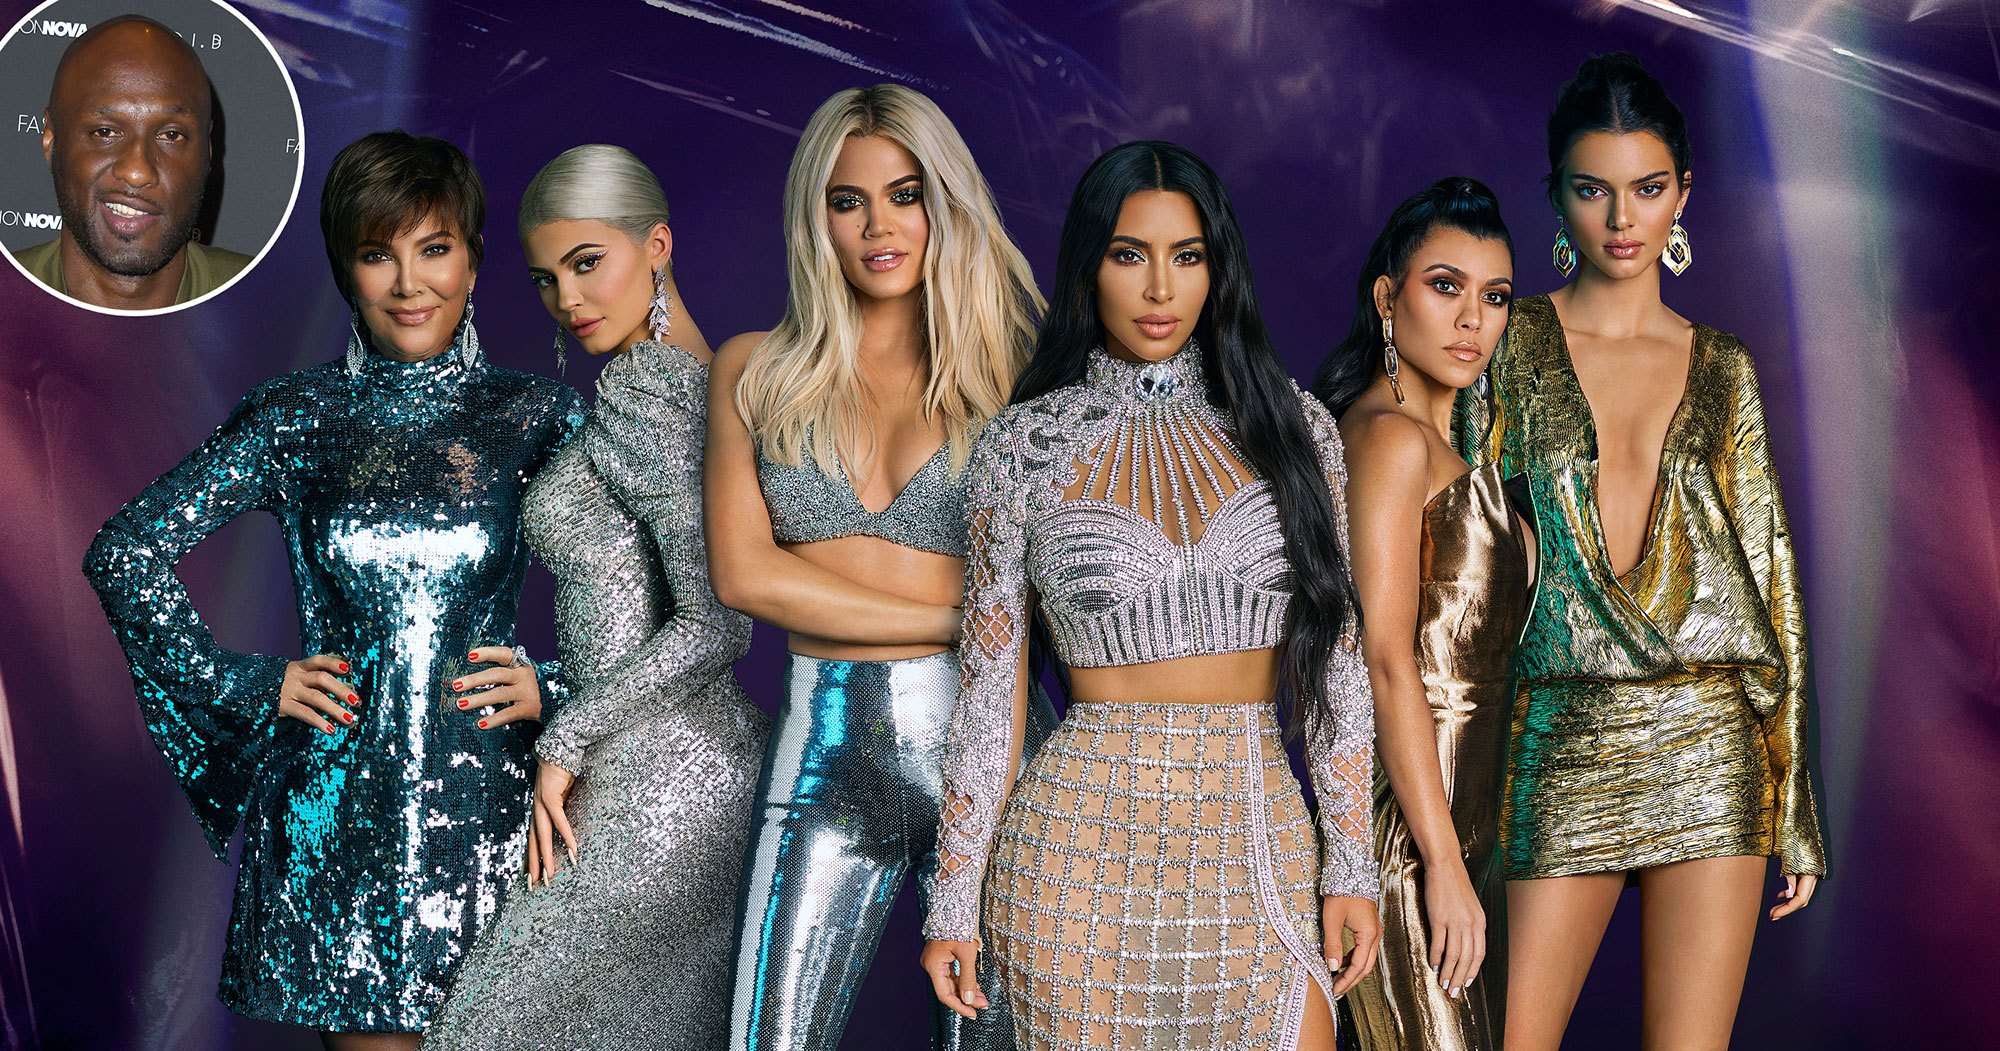 No Sweat! The Kardashians Aren't 'Worried' About Lamar Odom's New Tell-All